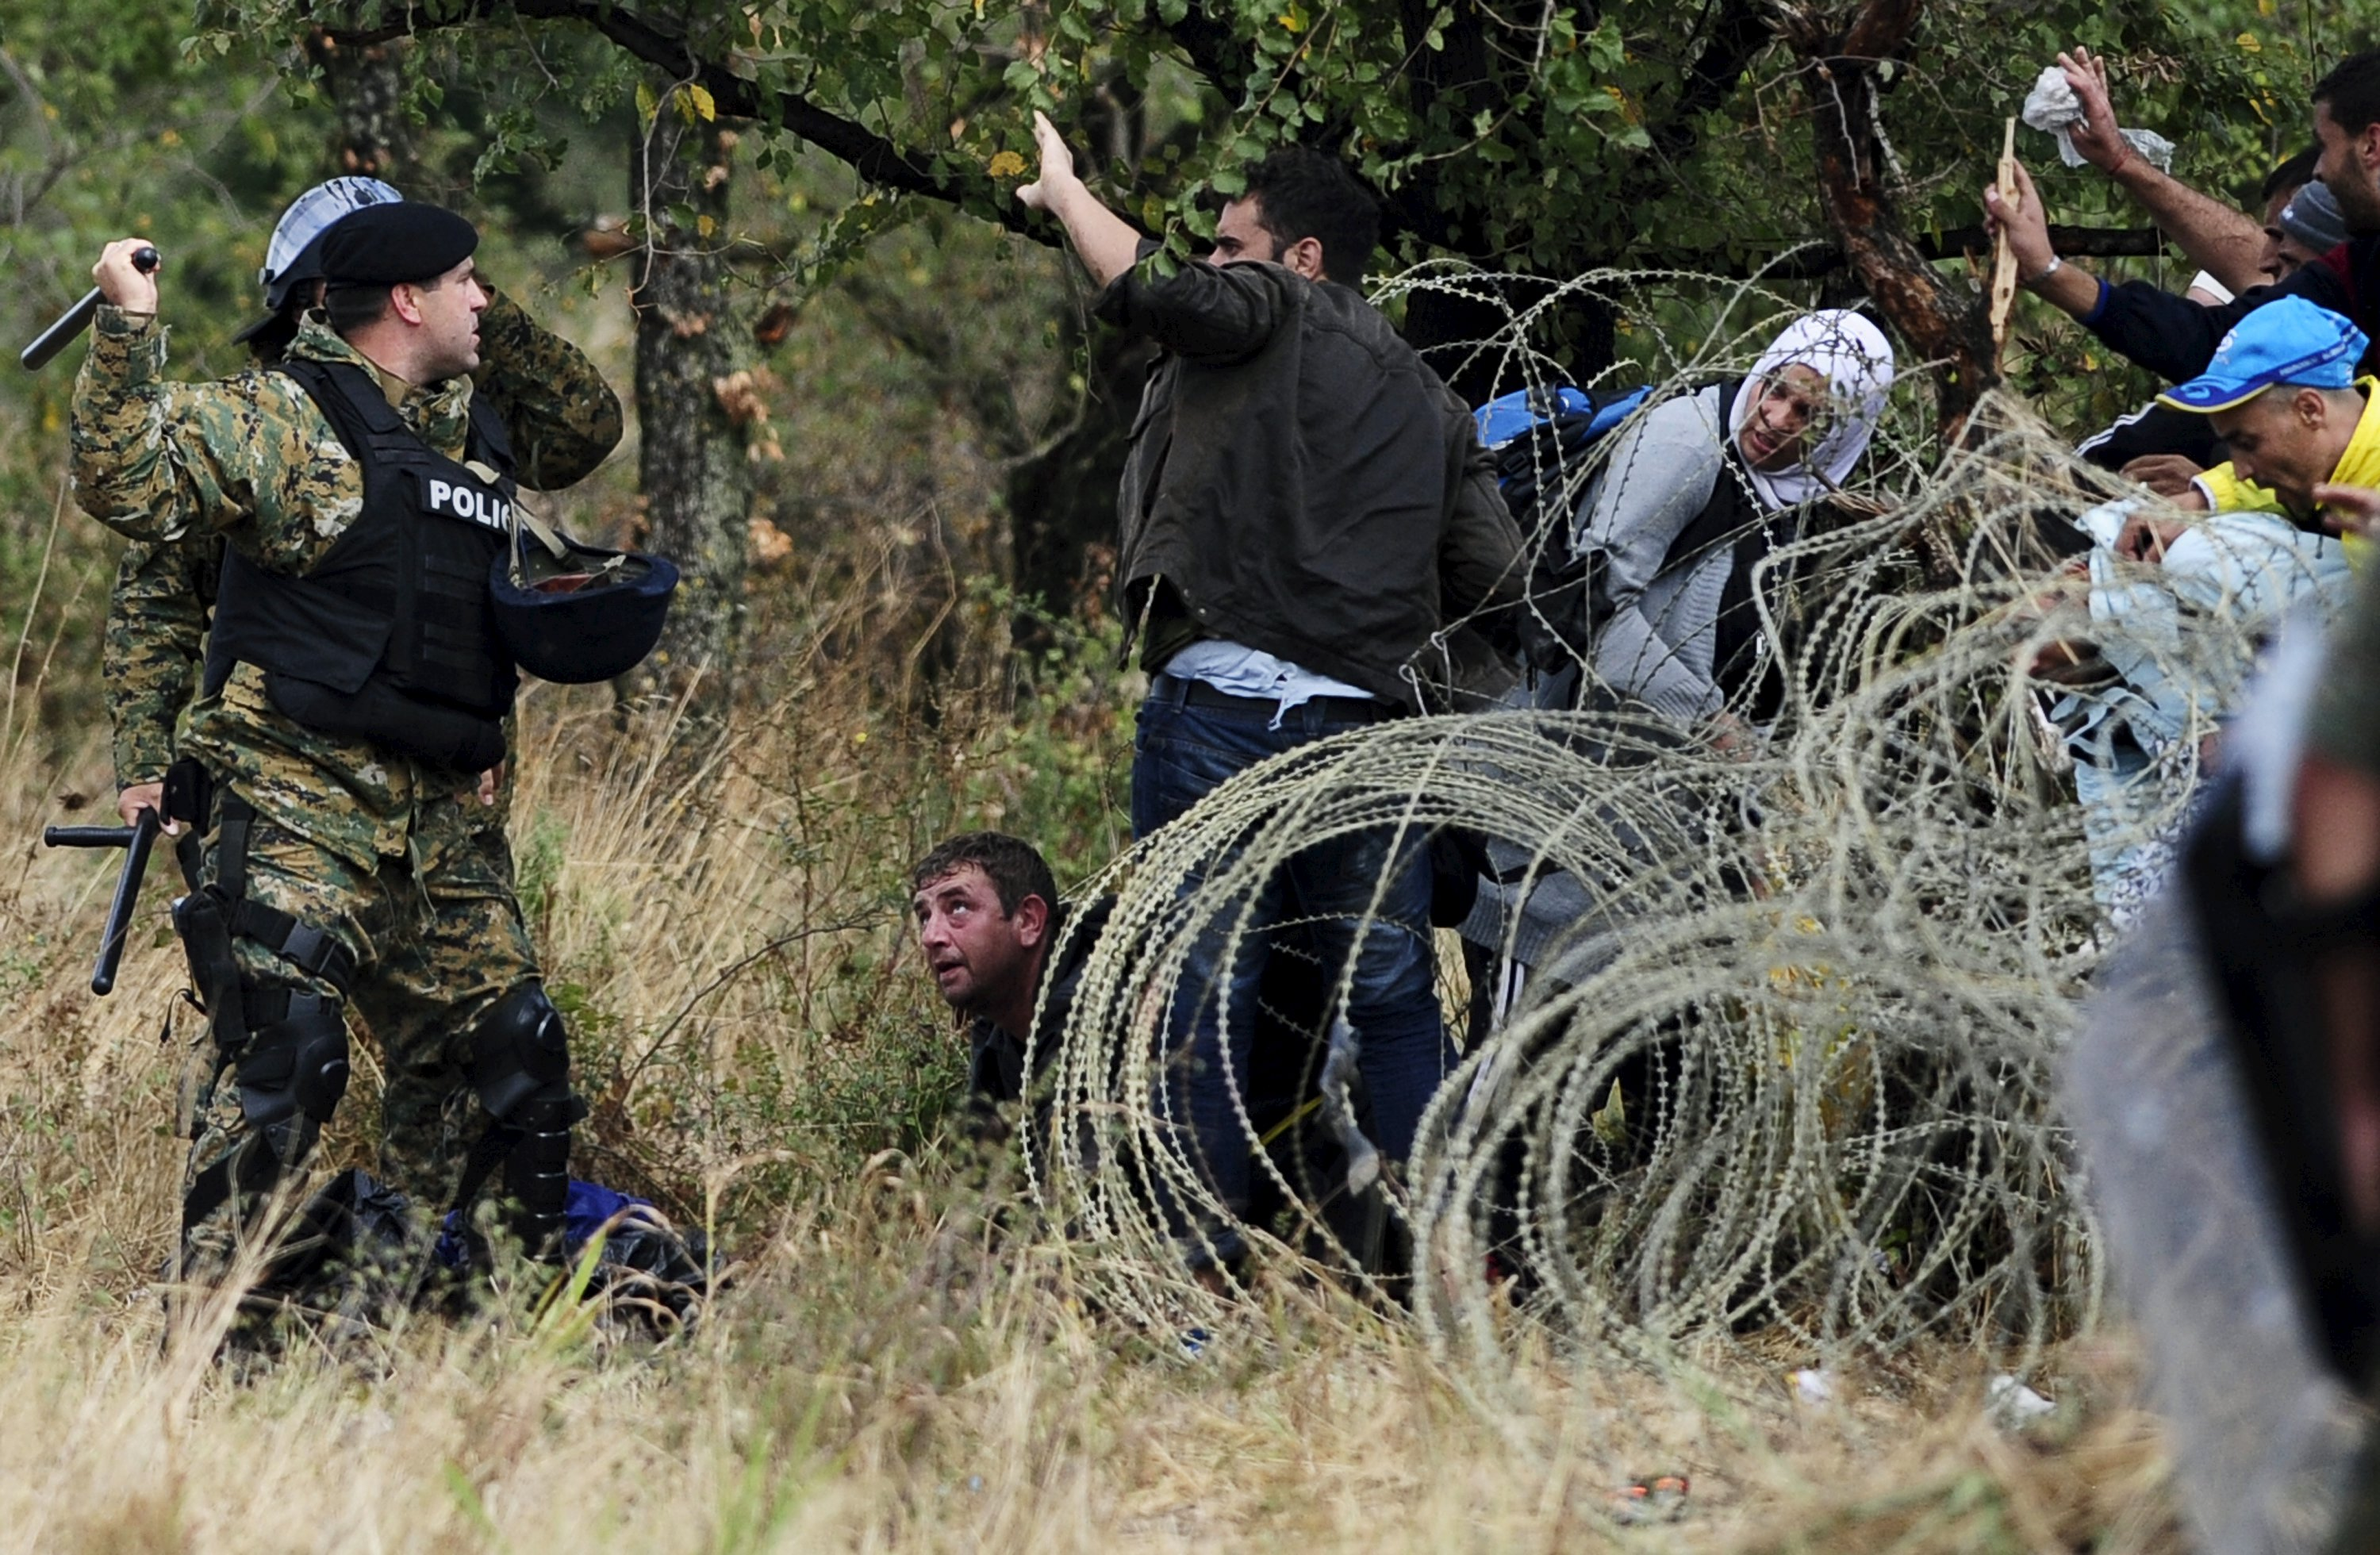 Police stops migrants from crossing Greece's border into Macedonia near Gevgelija, Macedonia, August 22, 2015. Thousands of rain-soaked migrants stormed across Macedonia's border on Saturday as police lobbed stun grenades and beat them with batons, struggling to enforce a decree to stem their flow through the Balkans to western Europe. Security forces managed to contain hundreds in no-man's land. But several thousand others – many of them Syrian refugees - tore through muddy fields to Macedonian territory after days spent in the open without access to shelter, food or water. REUTERS/Ognen Teofilovski